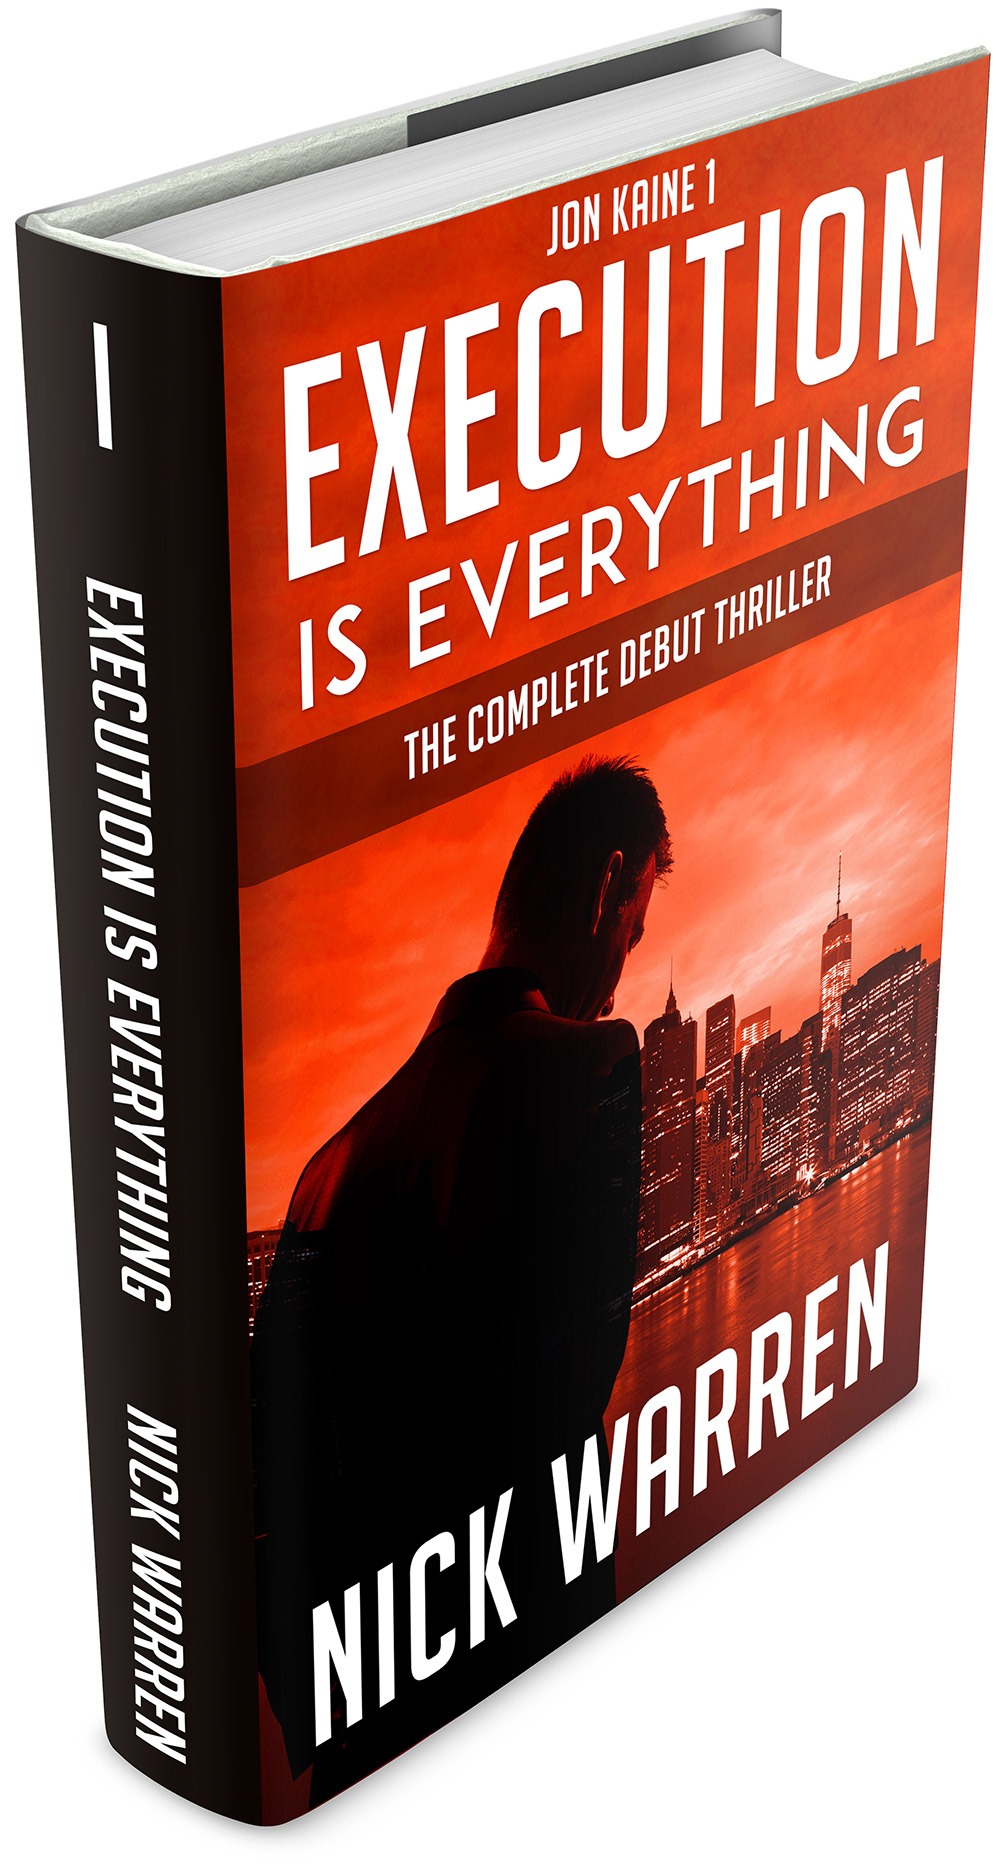 The  Complete Edition  contains all 3 parts of book 1,  Execution Is Everything ,  The Breach  &  Everything Ends .